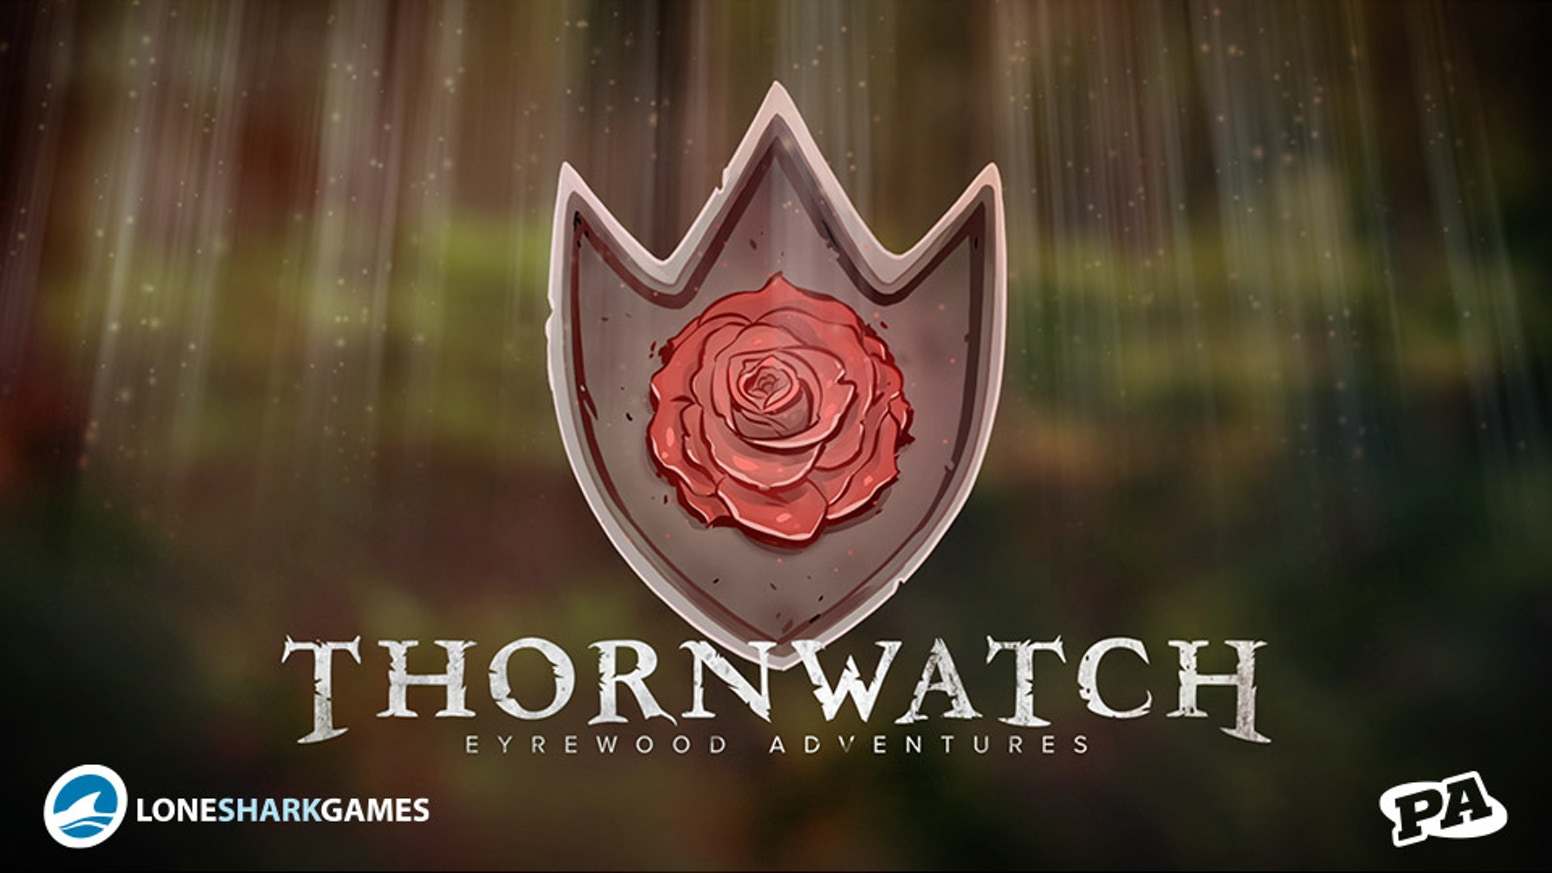 Lone Shark Games and Penny Arcade have combined forces to create the first Eyrewood Adventures board game. Welcome to Thornwatch.